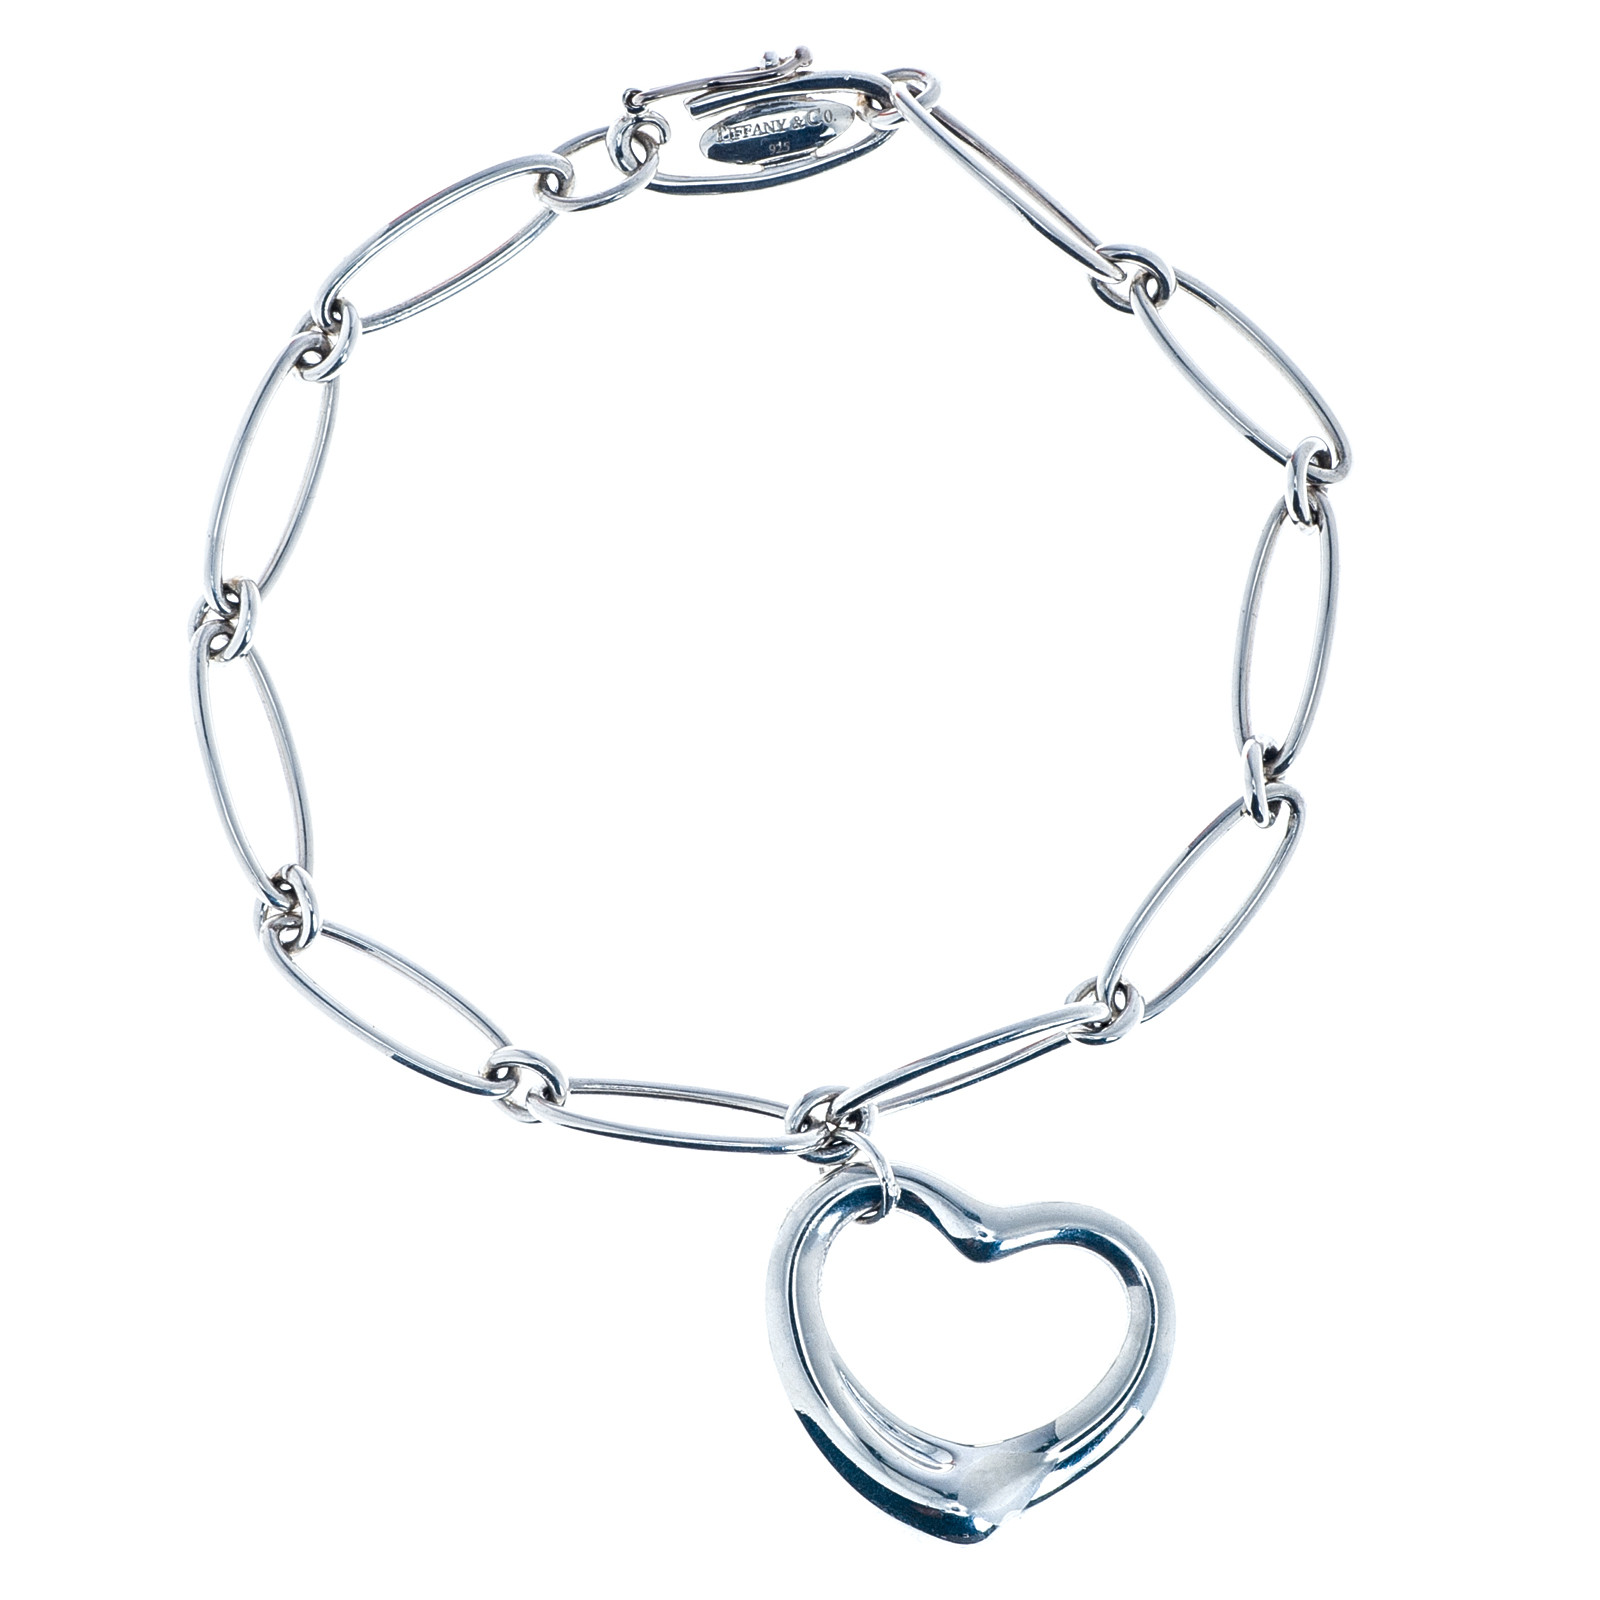 Vintage Tiffany & Co. Elsa Perreti Open Heart Bracelet